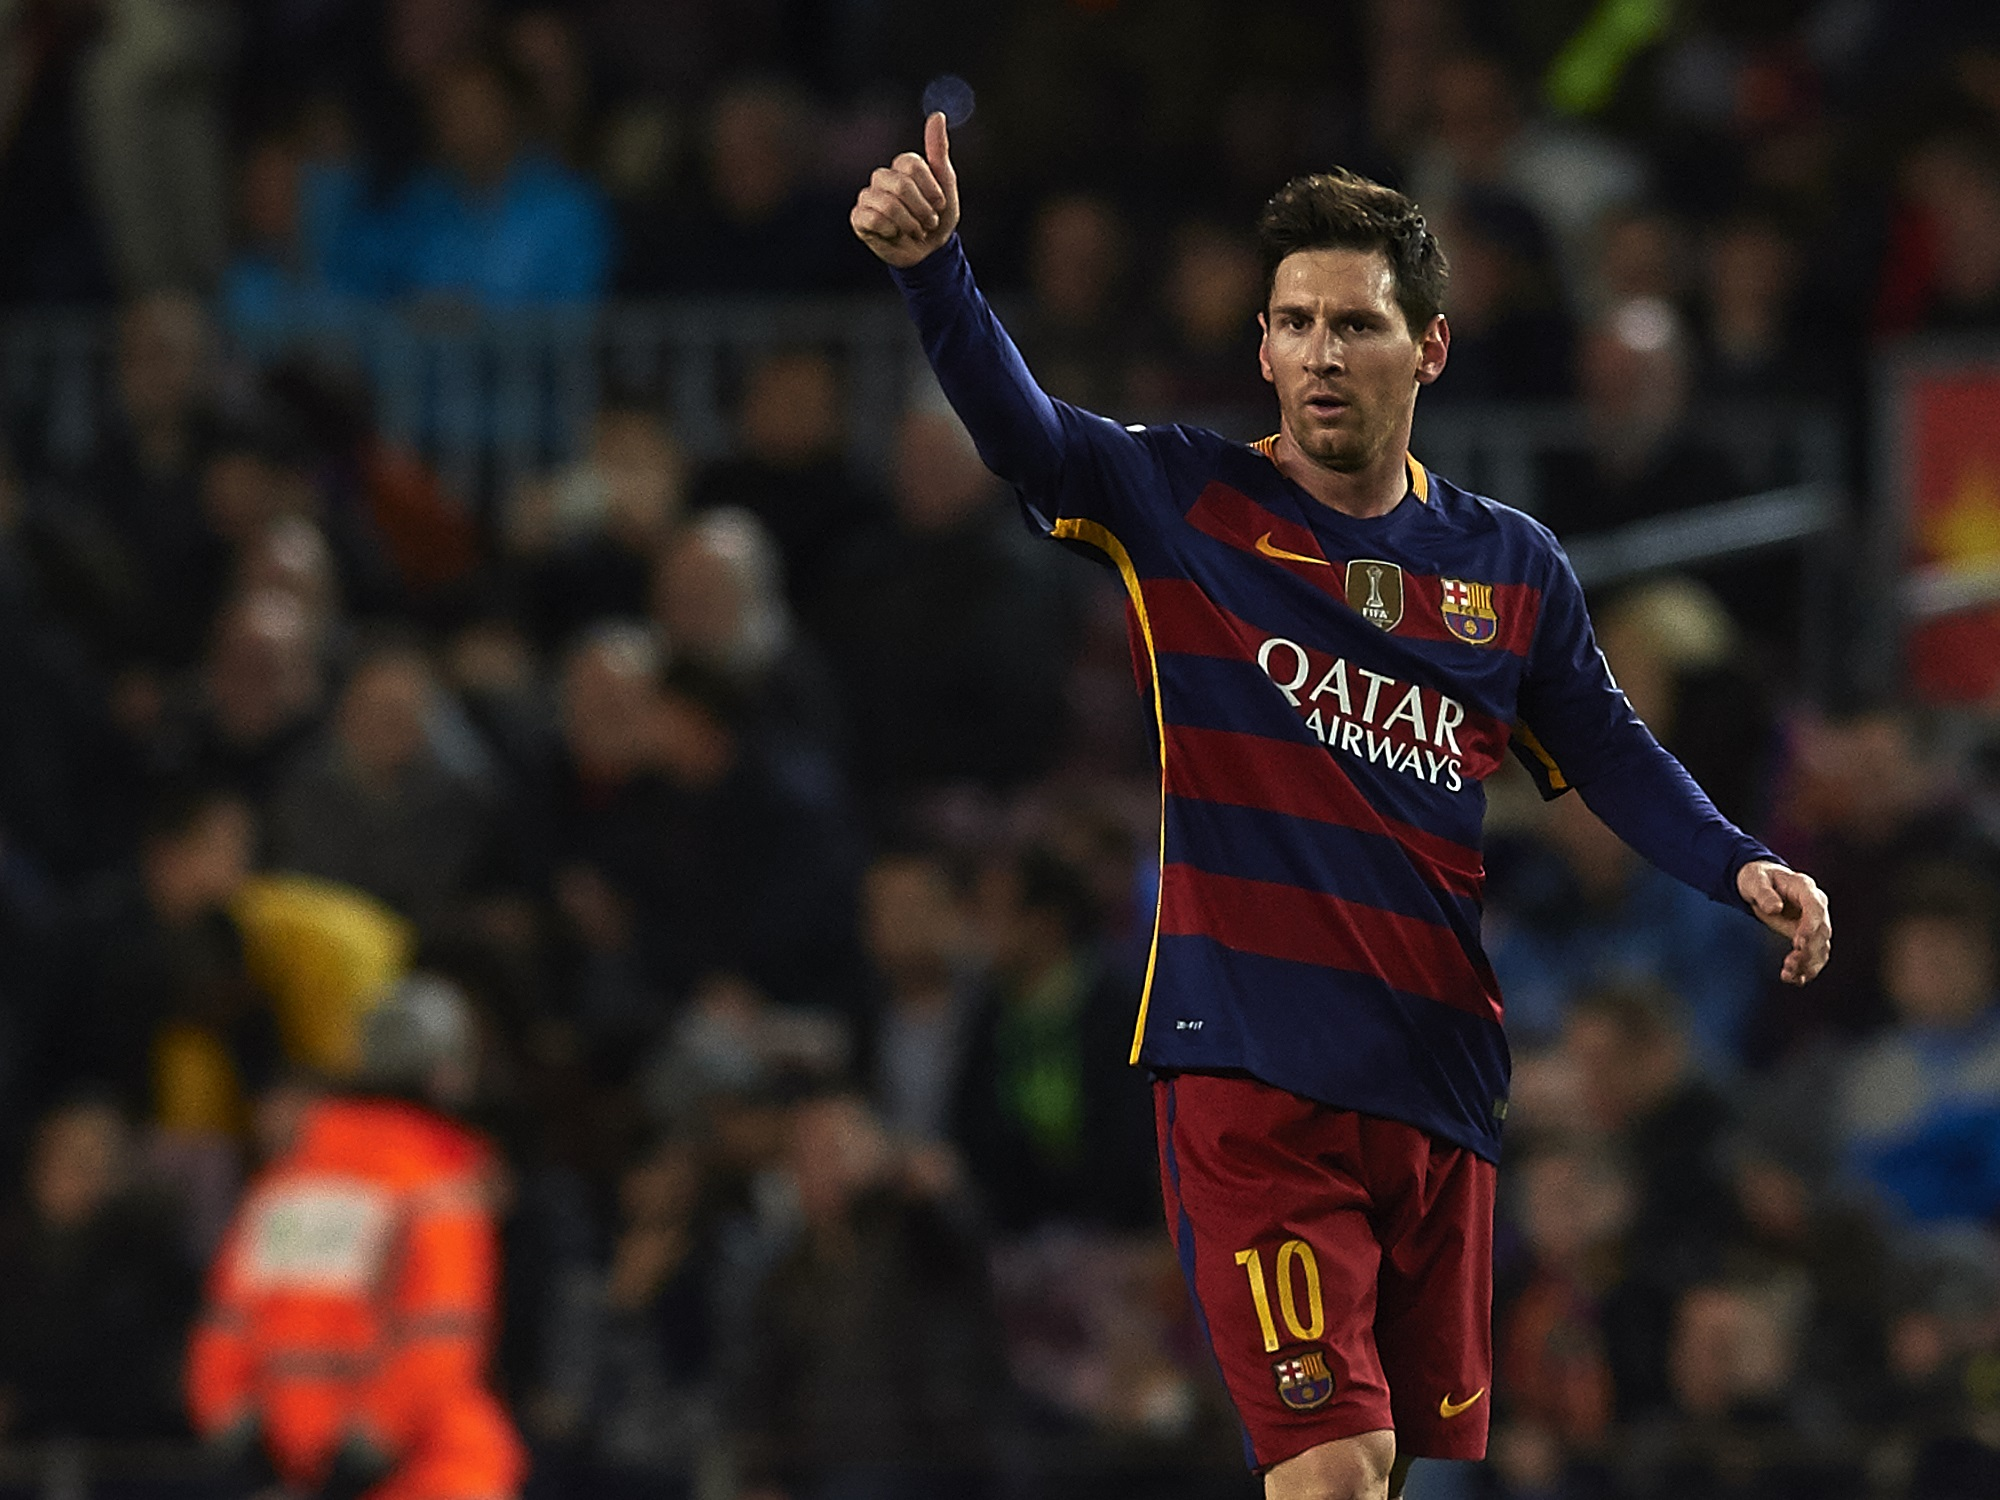 BARCELONA, SPAIN - FEBRUARY 03:  Lionel Messi of Barcelona celebrates scoring his team's third goal during the Copa del Rey Semi Final, first leg match between FC Barcelona and Valencia CF at Nou Camp on February 03, 2016 in Barcelona, Spain.  (Photo by Manuel Queimadelos Alonso/Getty Images)